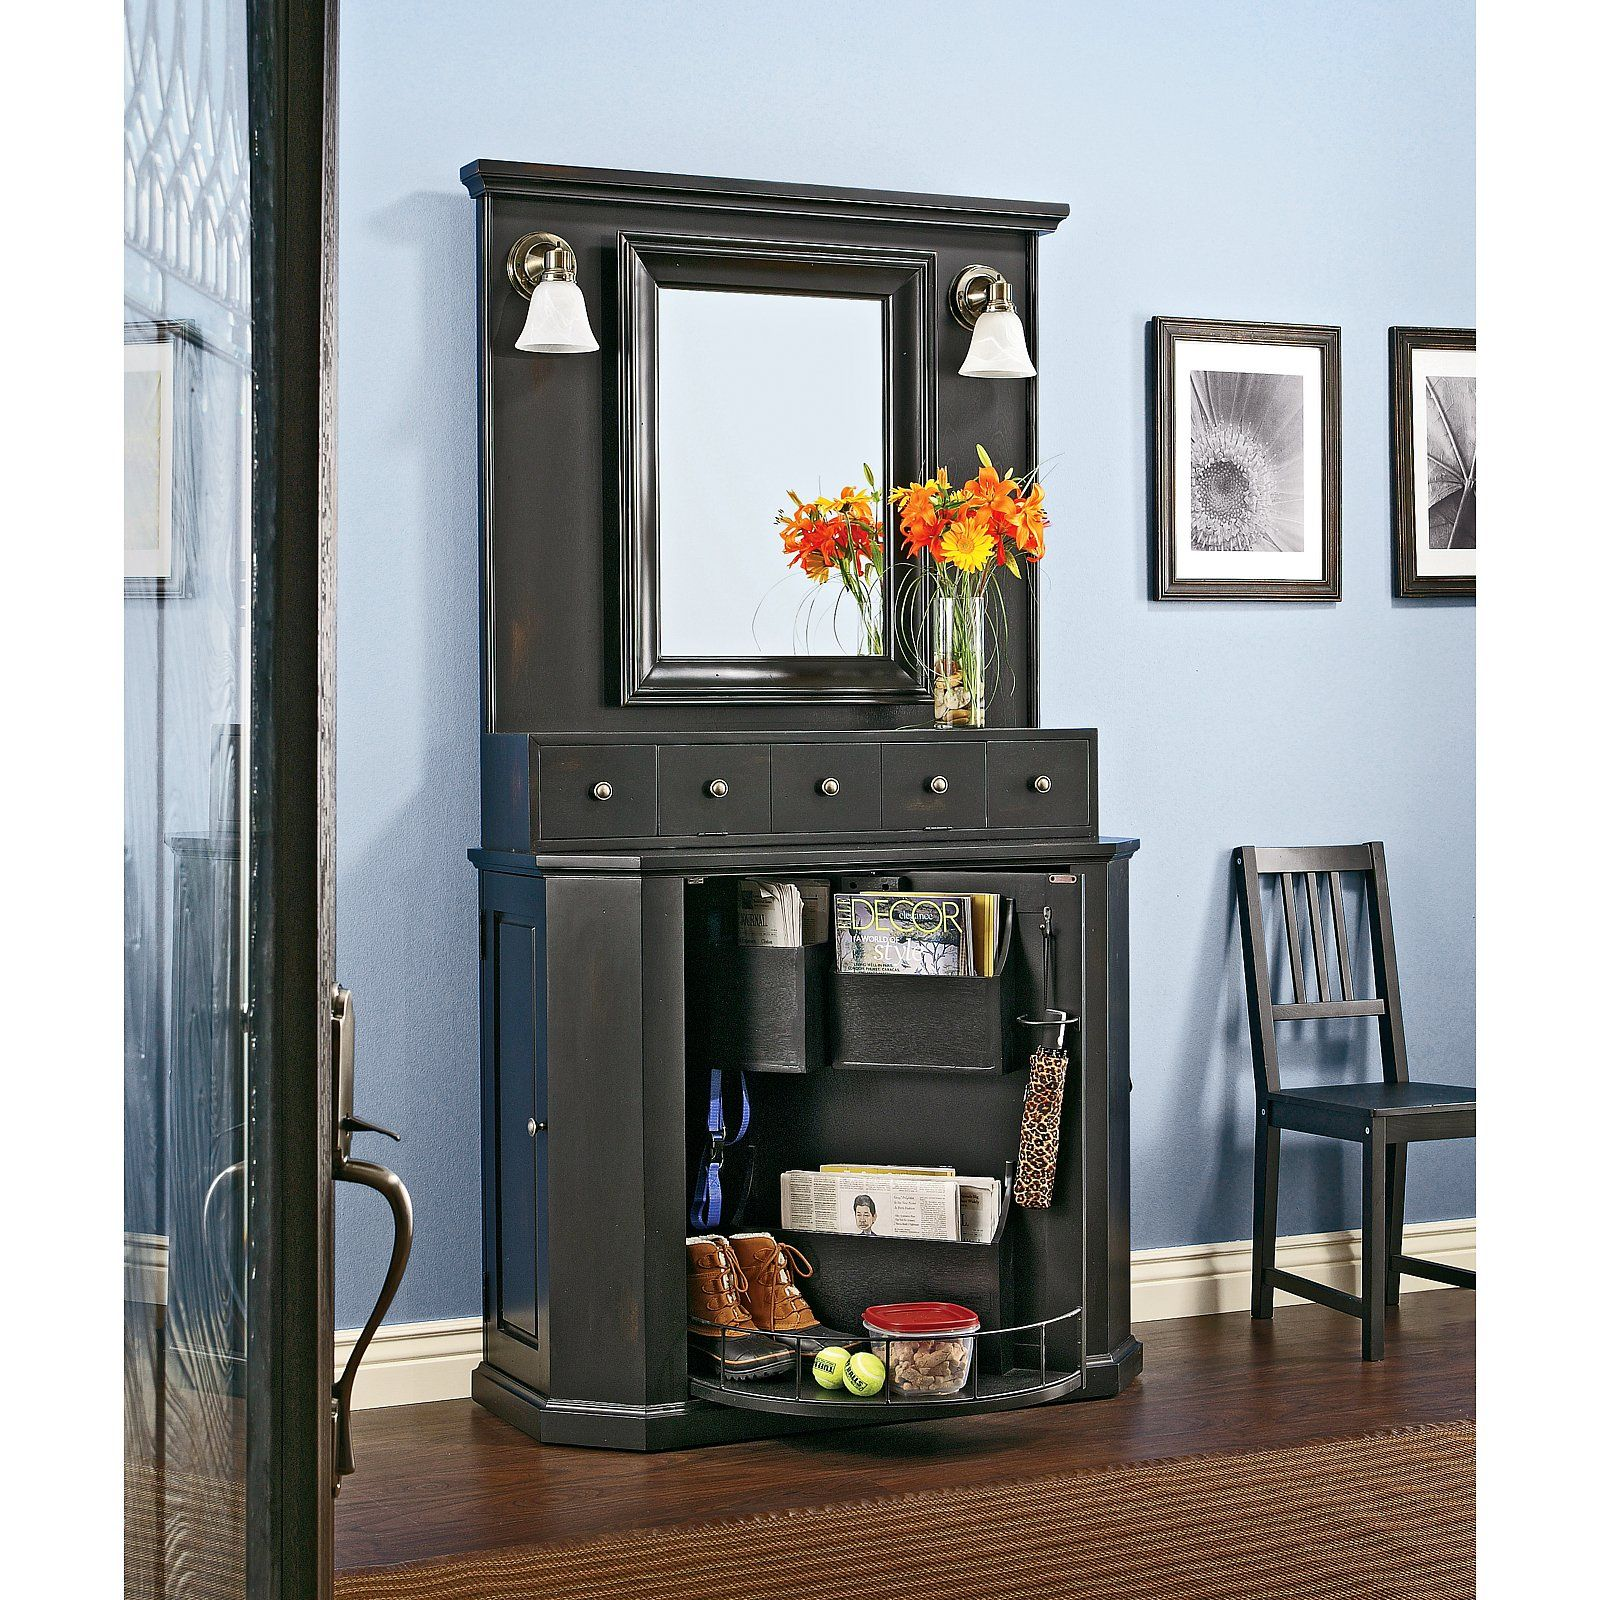 Have To Have It. Ty Pennington Collection Entry Organizer